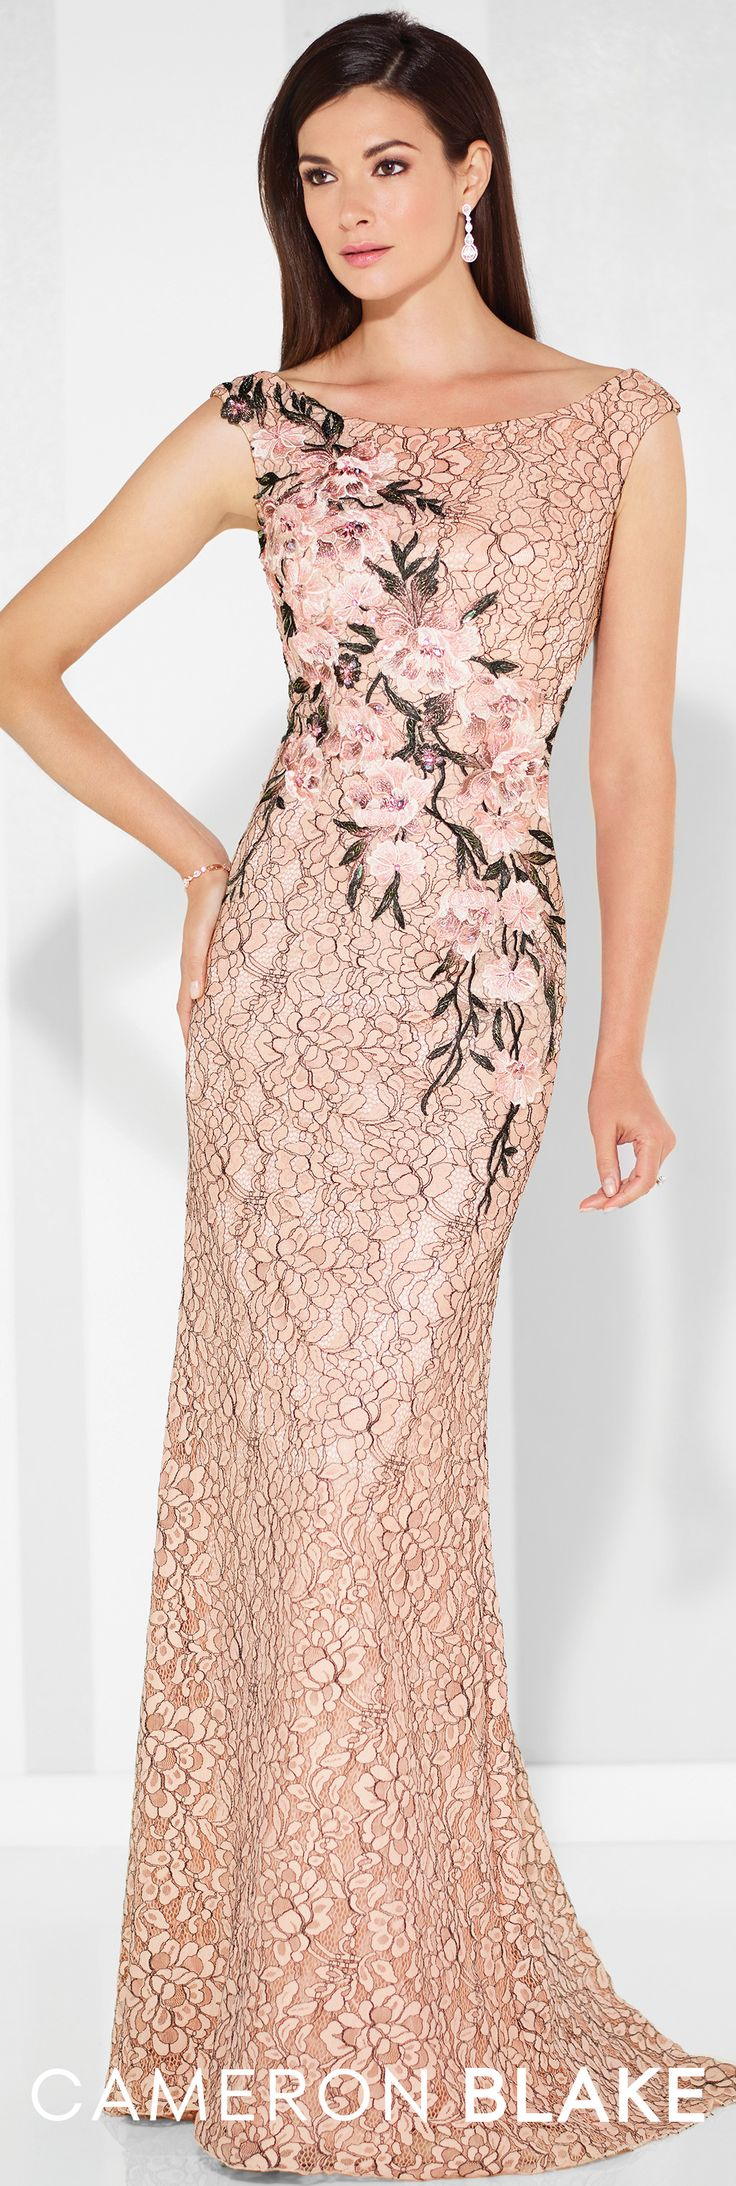 Formal Evening Gowns by Mon Cheri - Spring 2017 - Style No. 117607 - blush pink floral lace and tulle fit and flare evening dress with slight cap sleeves